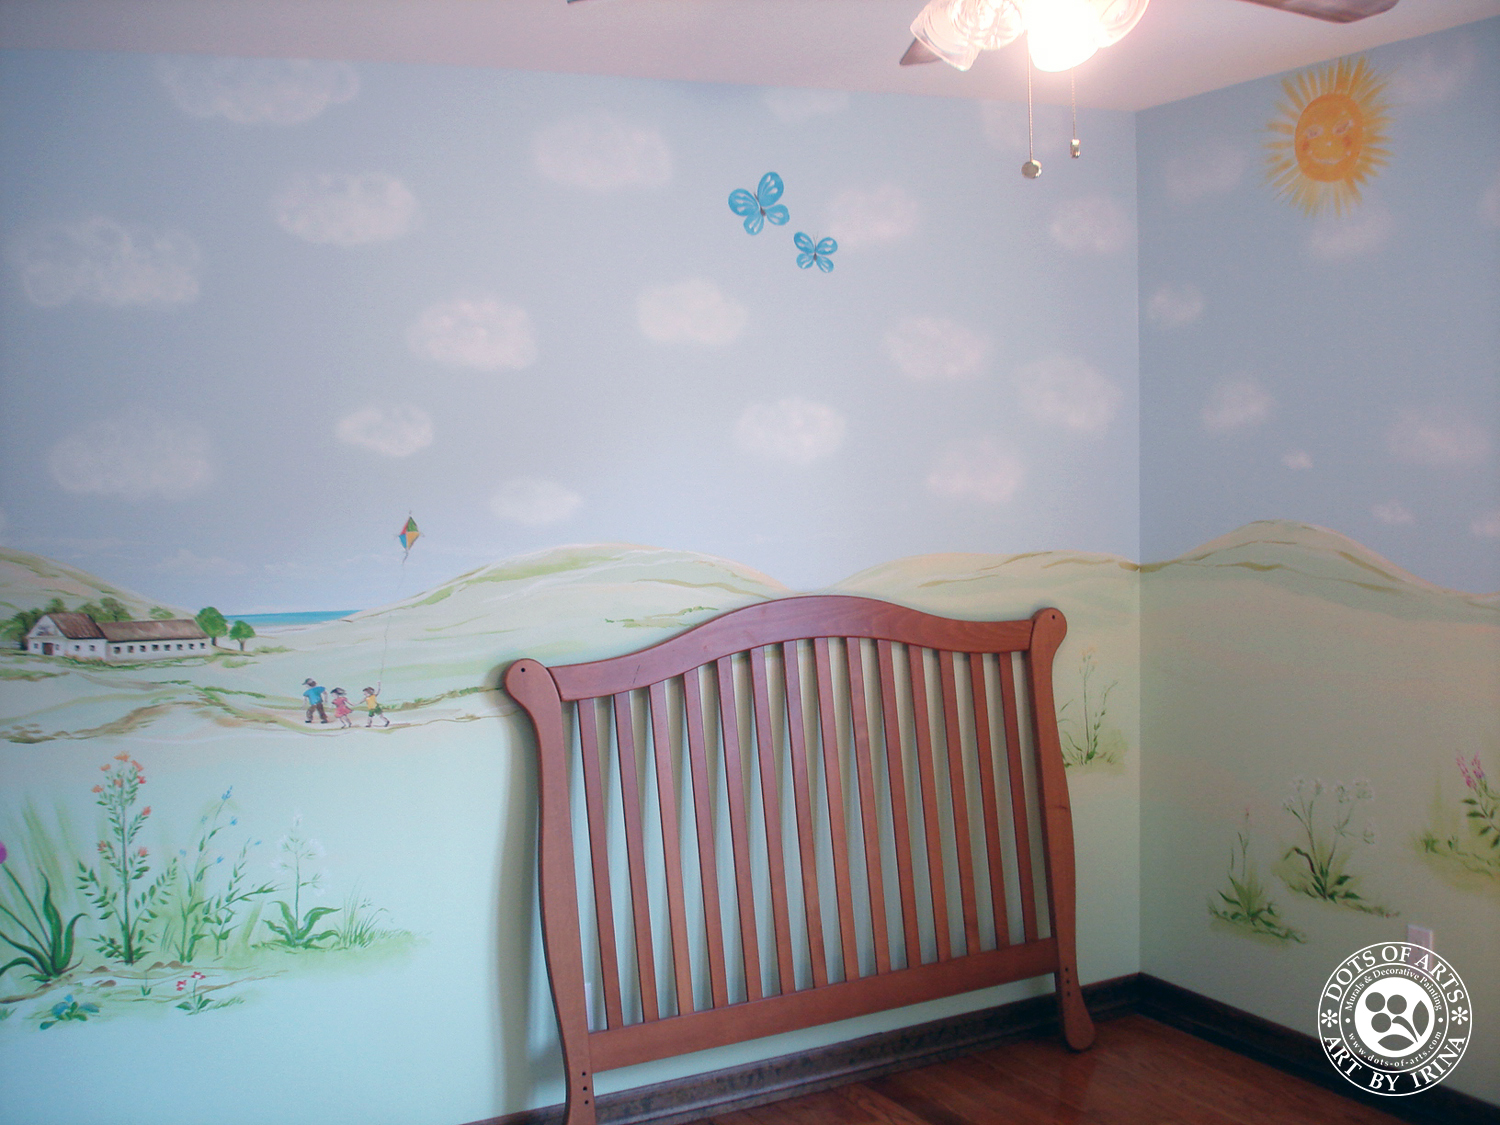 mural-custom-baby-room-farm-theme-clouds-wild-flowers-dots-of-arts-sly-puffy-clouds.jpg